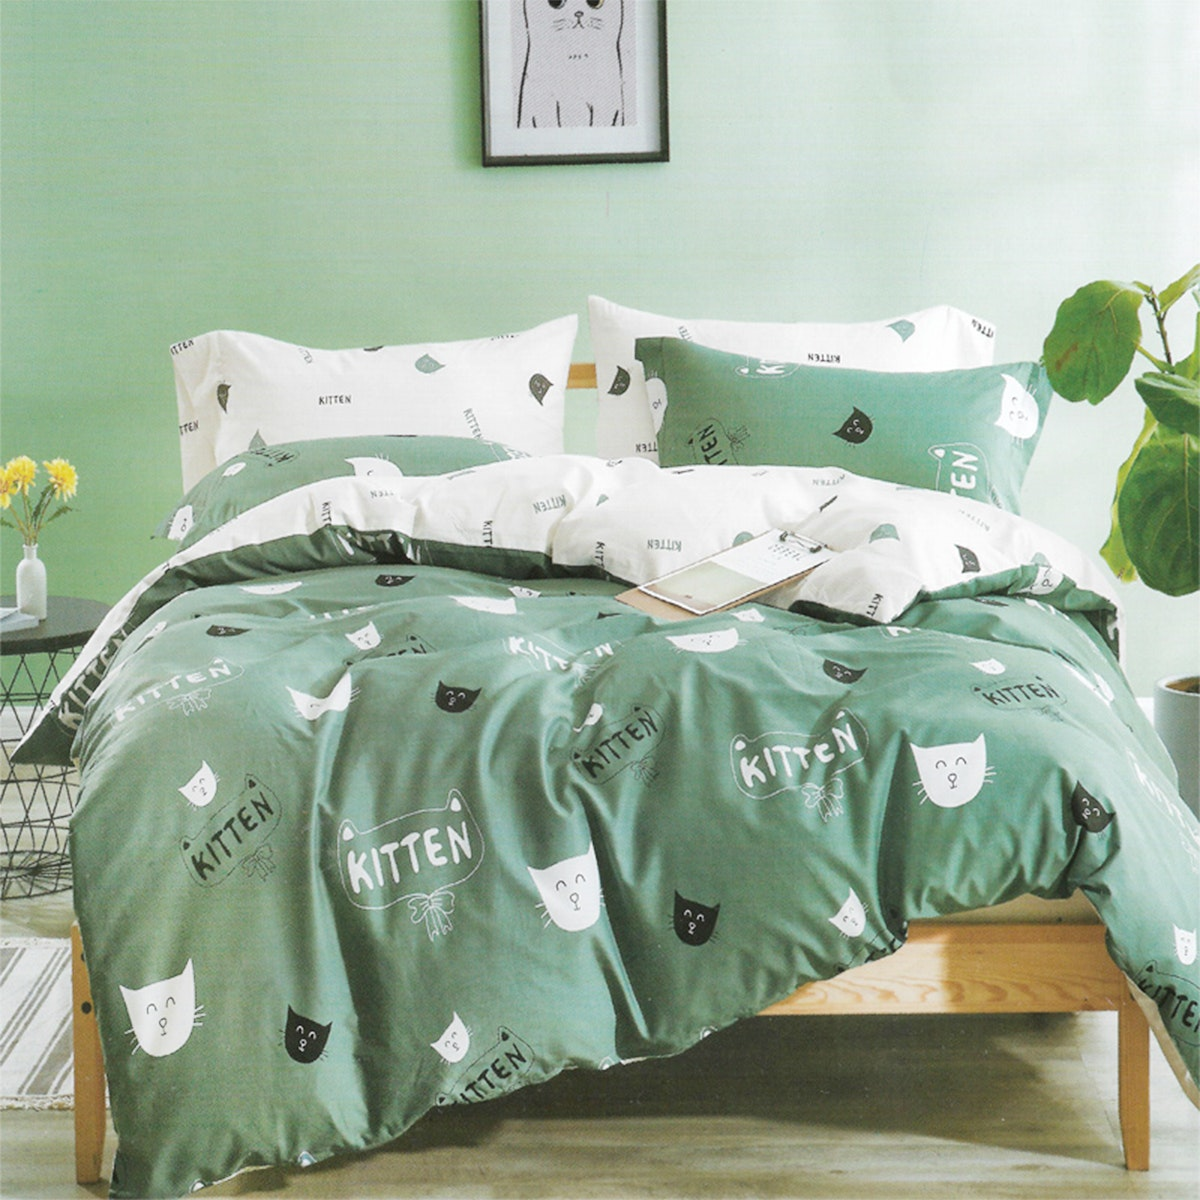 Sleep Buddy Set Sprei Kitty Cat Cotton Sateen 160x200x30